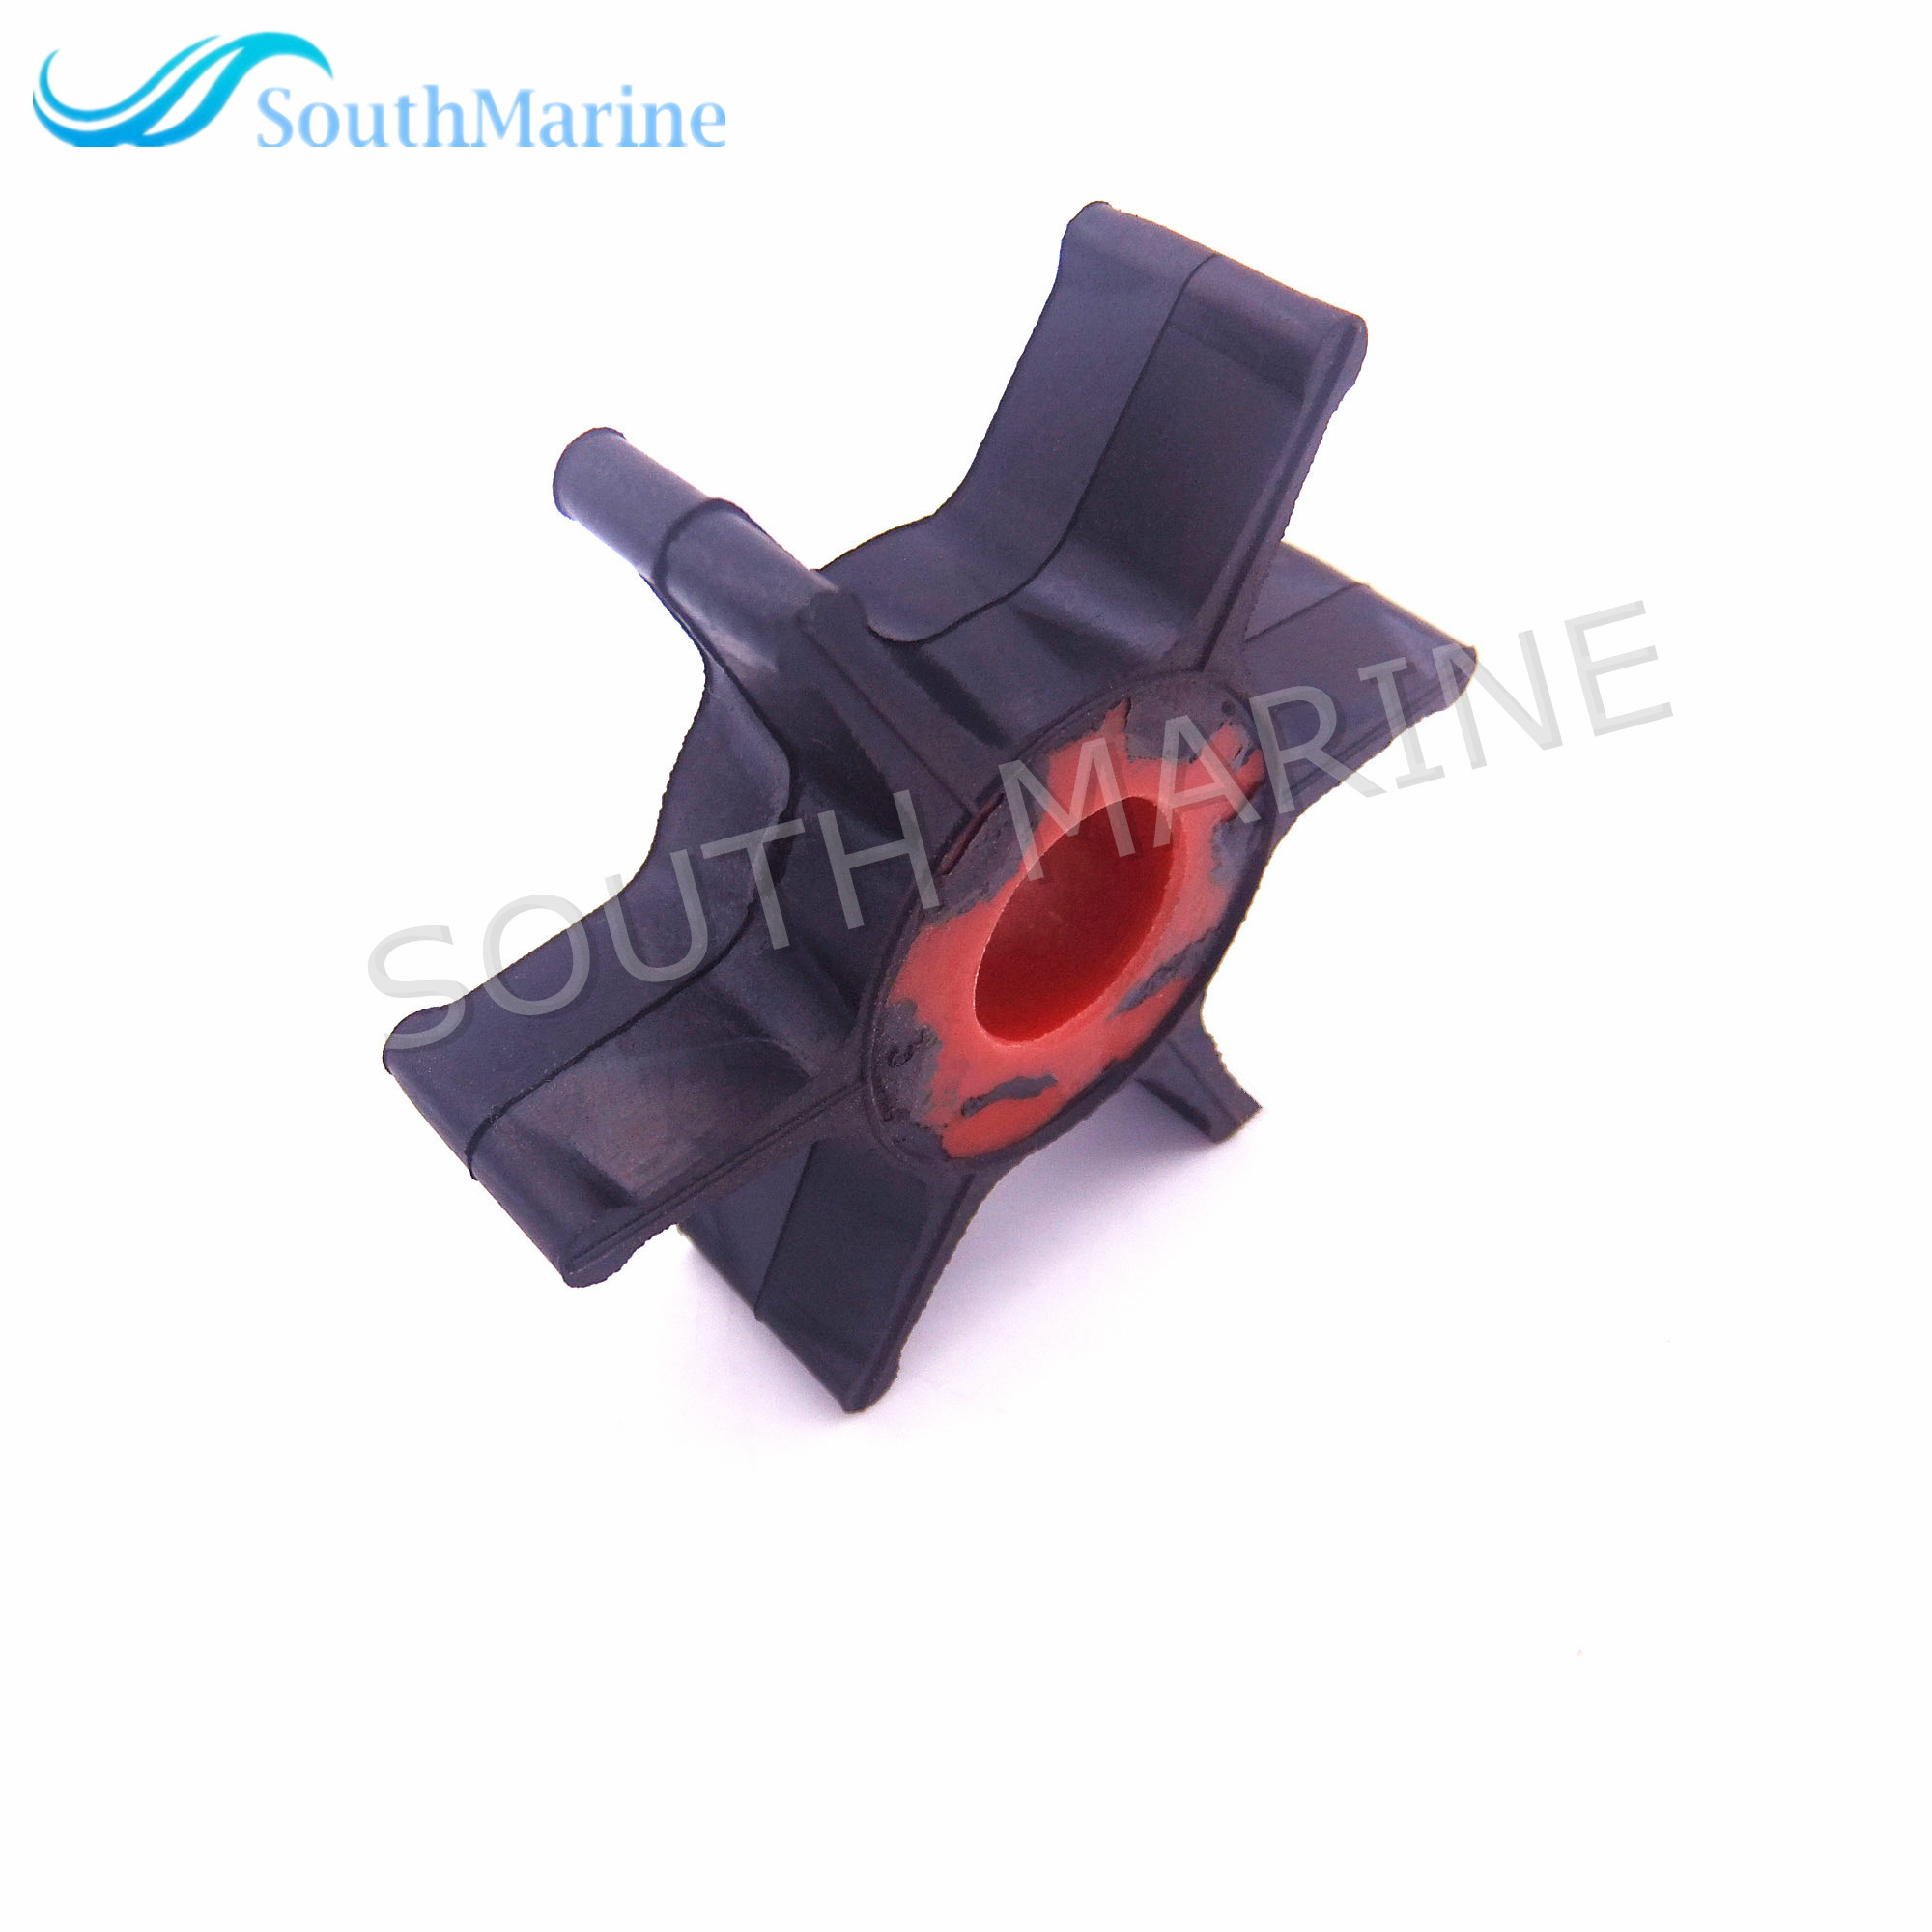 Boat Motor 47-F436065-2 18-8903 9-45004 Water Pump Impeller For Chrysler Force Mercury Marine 9.9HP 15HP Outboard Engine